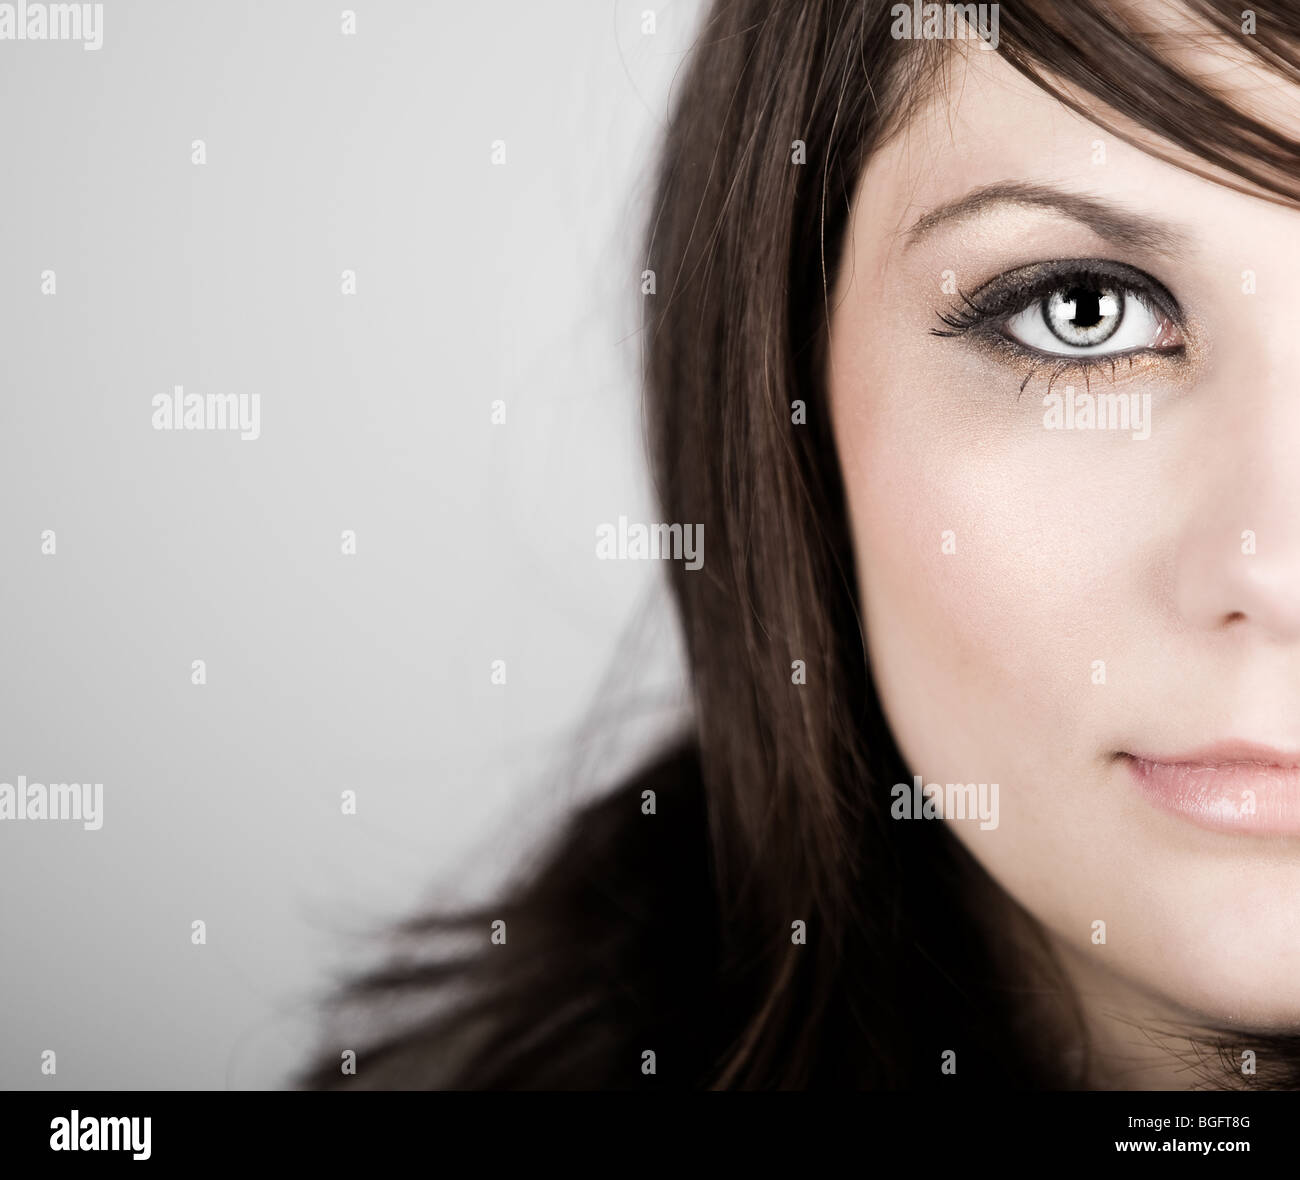 Close Up Shot of a Beautiful Blonde Haired Teenager - Stock Image